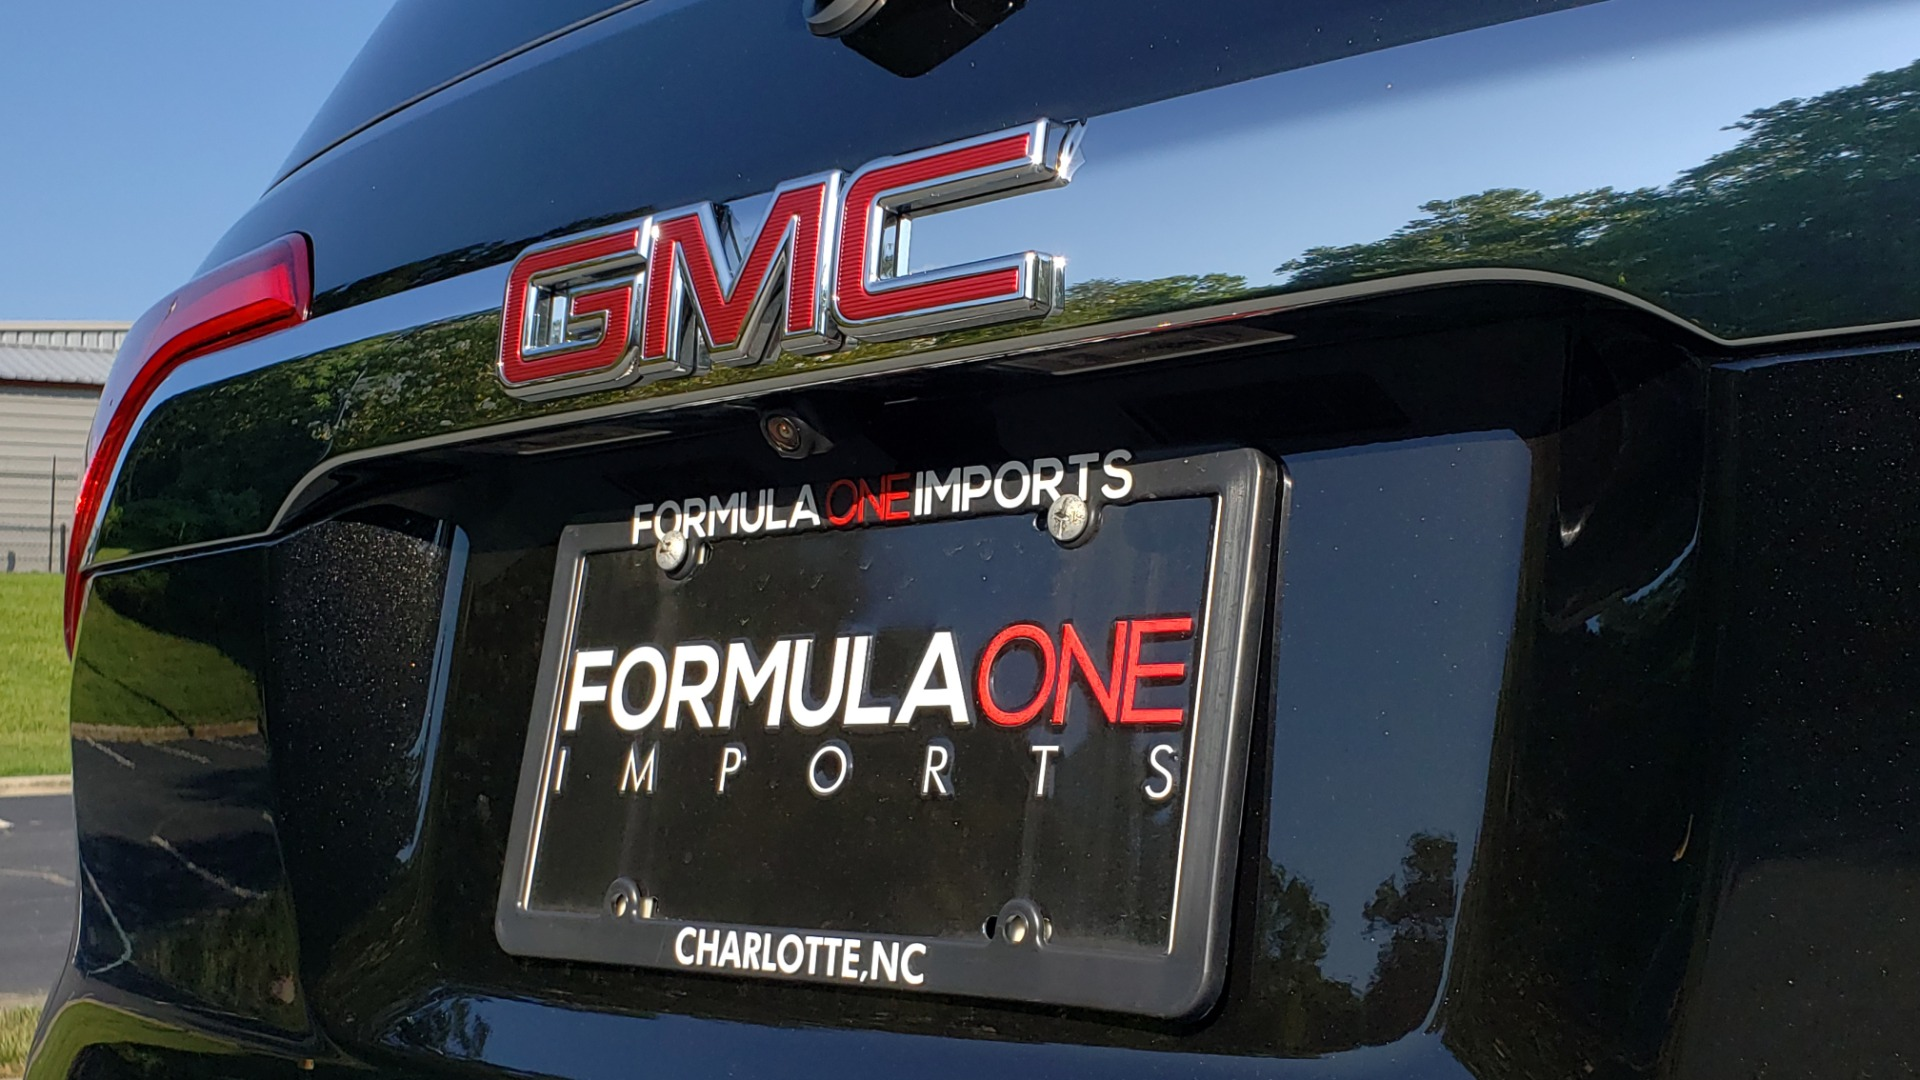 Used 2017 GMC ACADIA DENALI / FWD / NAV / SUNROOF / CAMERA / 3-ROW for sale Sold at Formula Imports in Charlotte NC 28227 31